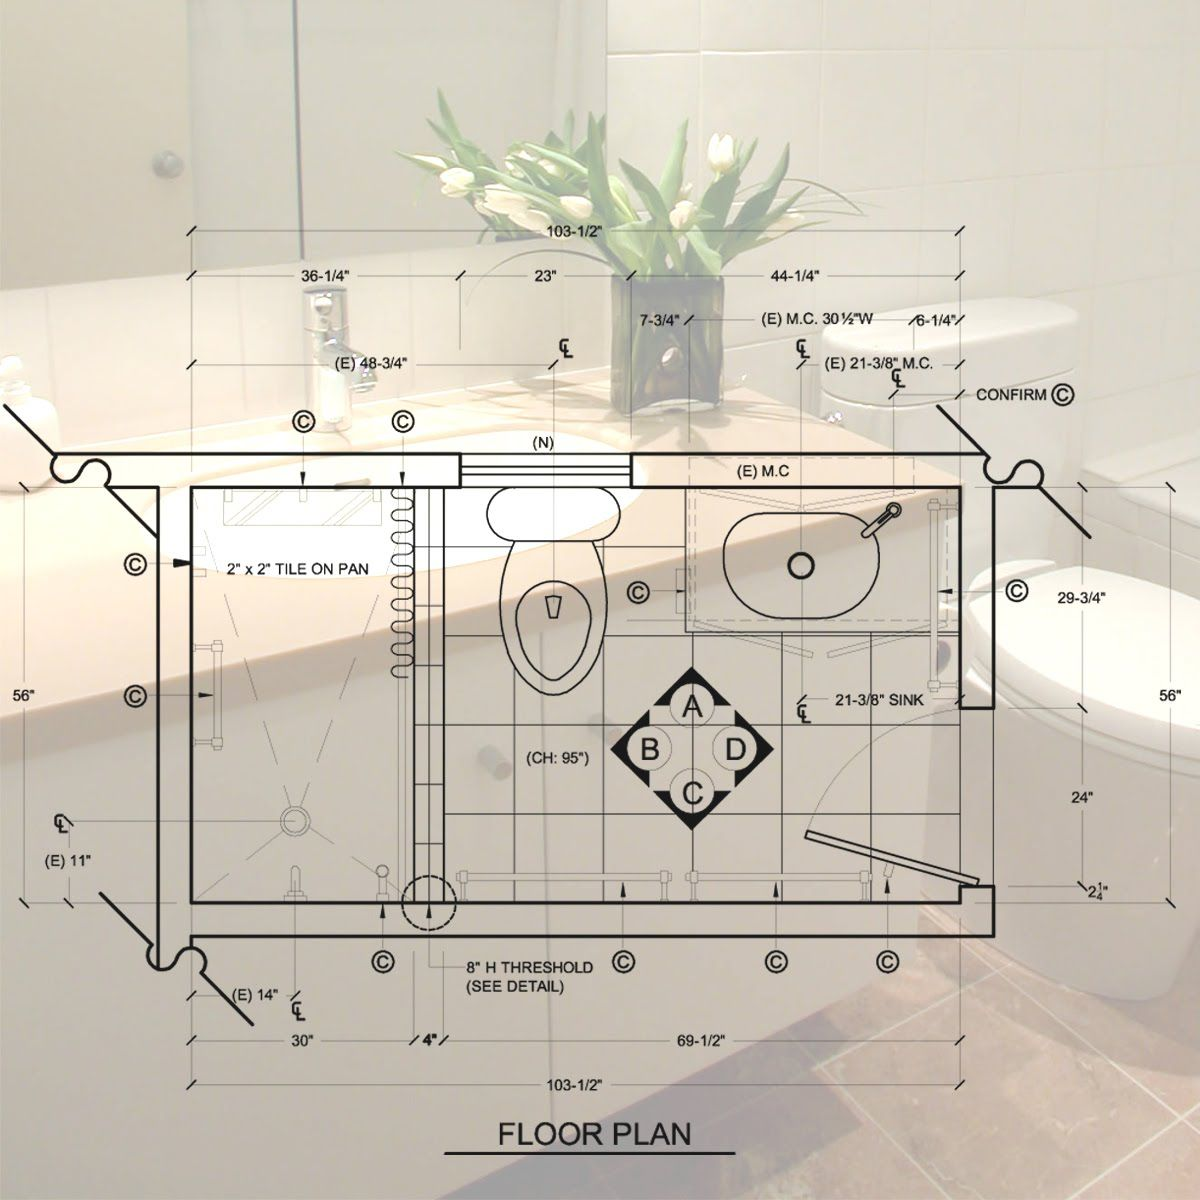 C L K Design Studio: Standard 5'x 8' Bathroom Design & Construction Document